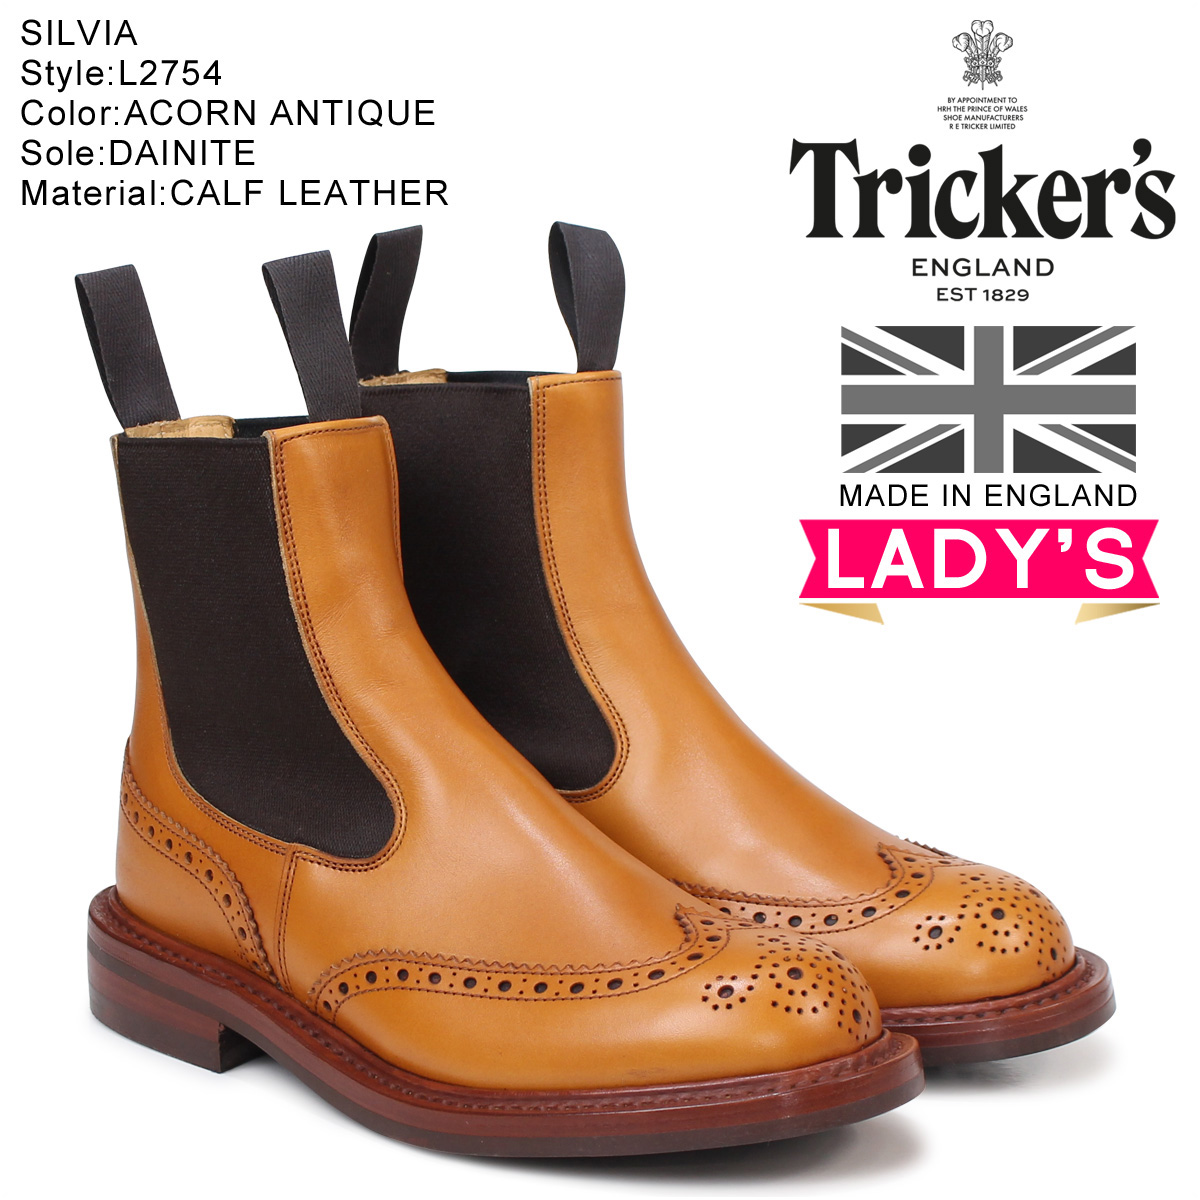 SneaK Online Shop Shop Shop | Rakuten Global Market: [SOLD OUT] trickers Tricker's elastic day night sort ladies Couleur [Akon antique] L2754 ELASTIC 4 wise calf leather Made In ENGLAND 612f8a